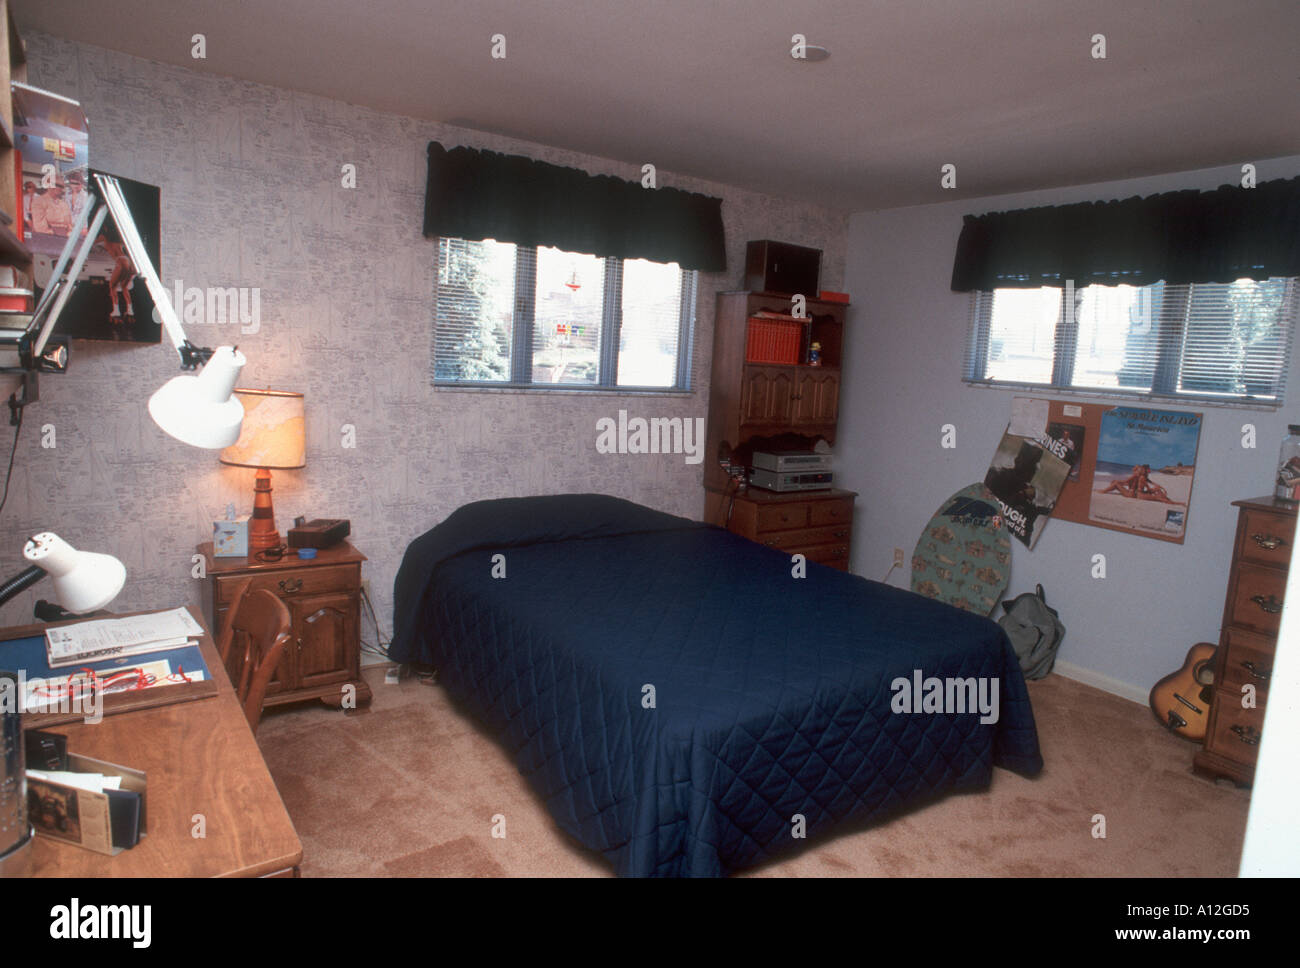 Pittsburgh Pa Usa American Single Family House Interior Male Stock Photo Alamy